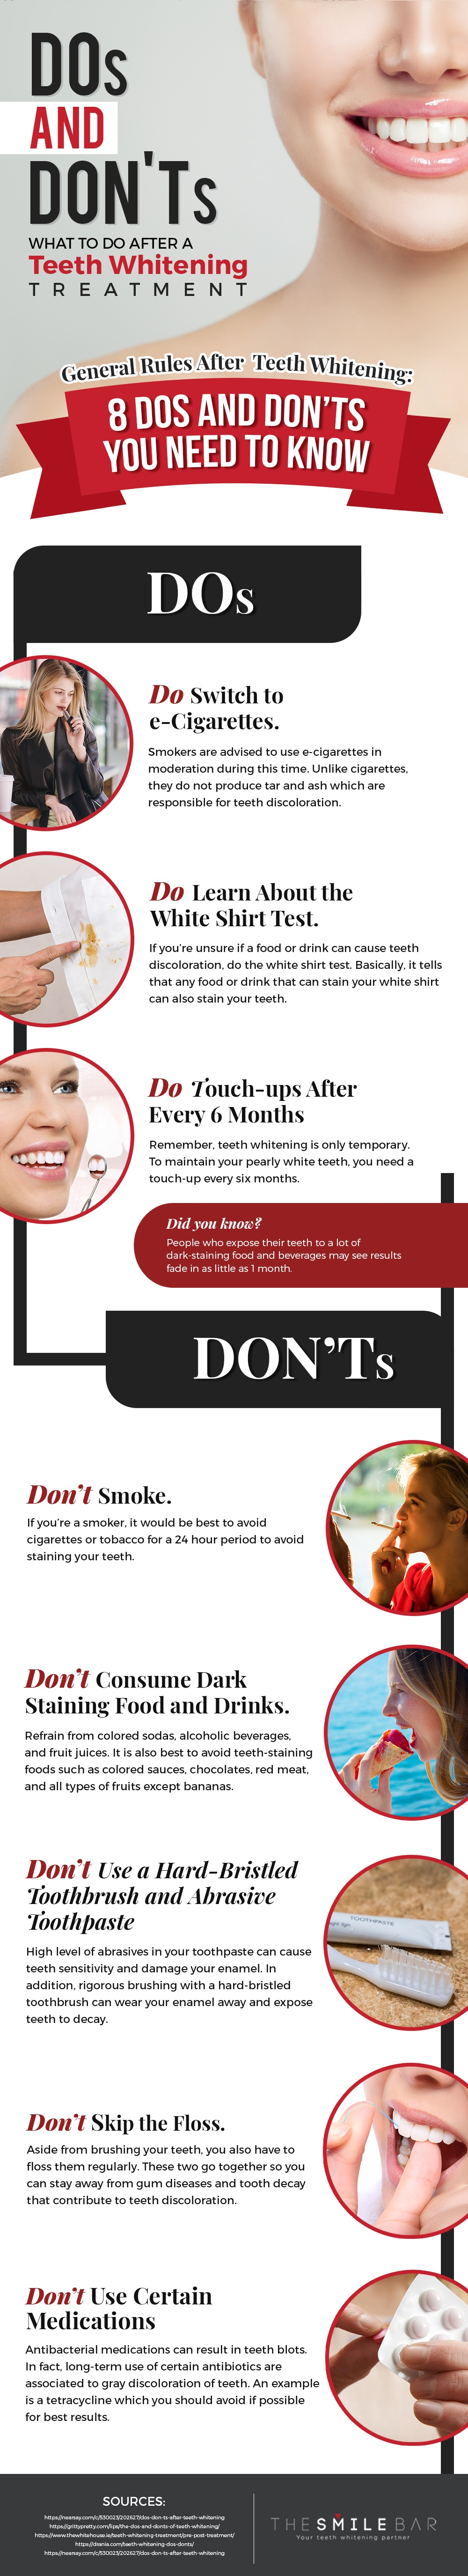 Essential Guide to Post Teeth Whitening Care: 8 Important Do's and Don'ts - Infographic